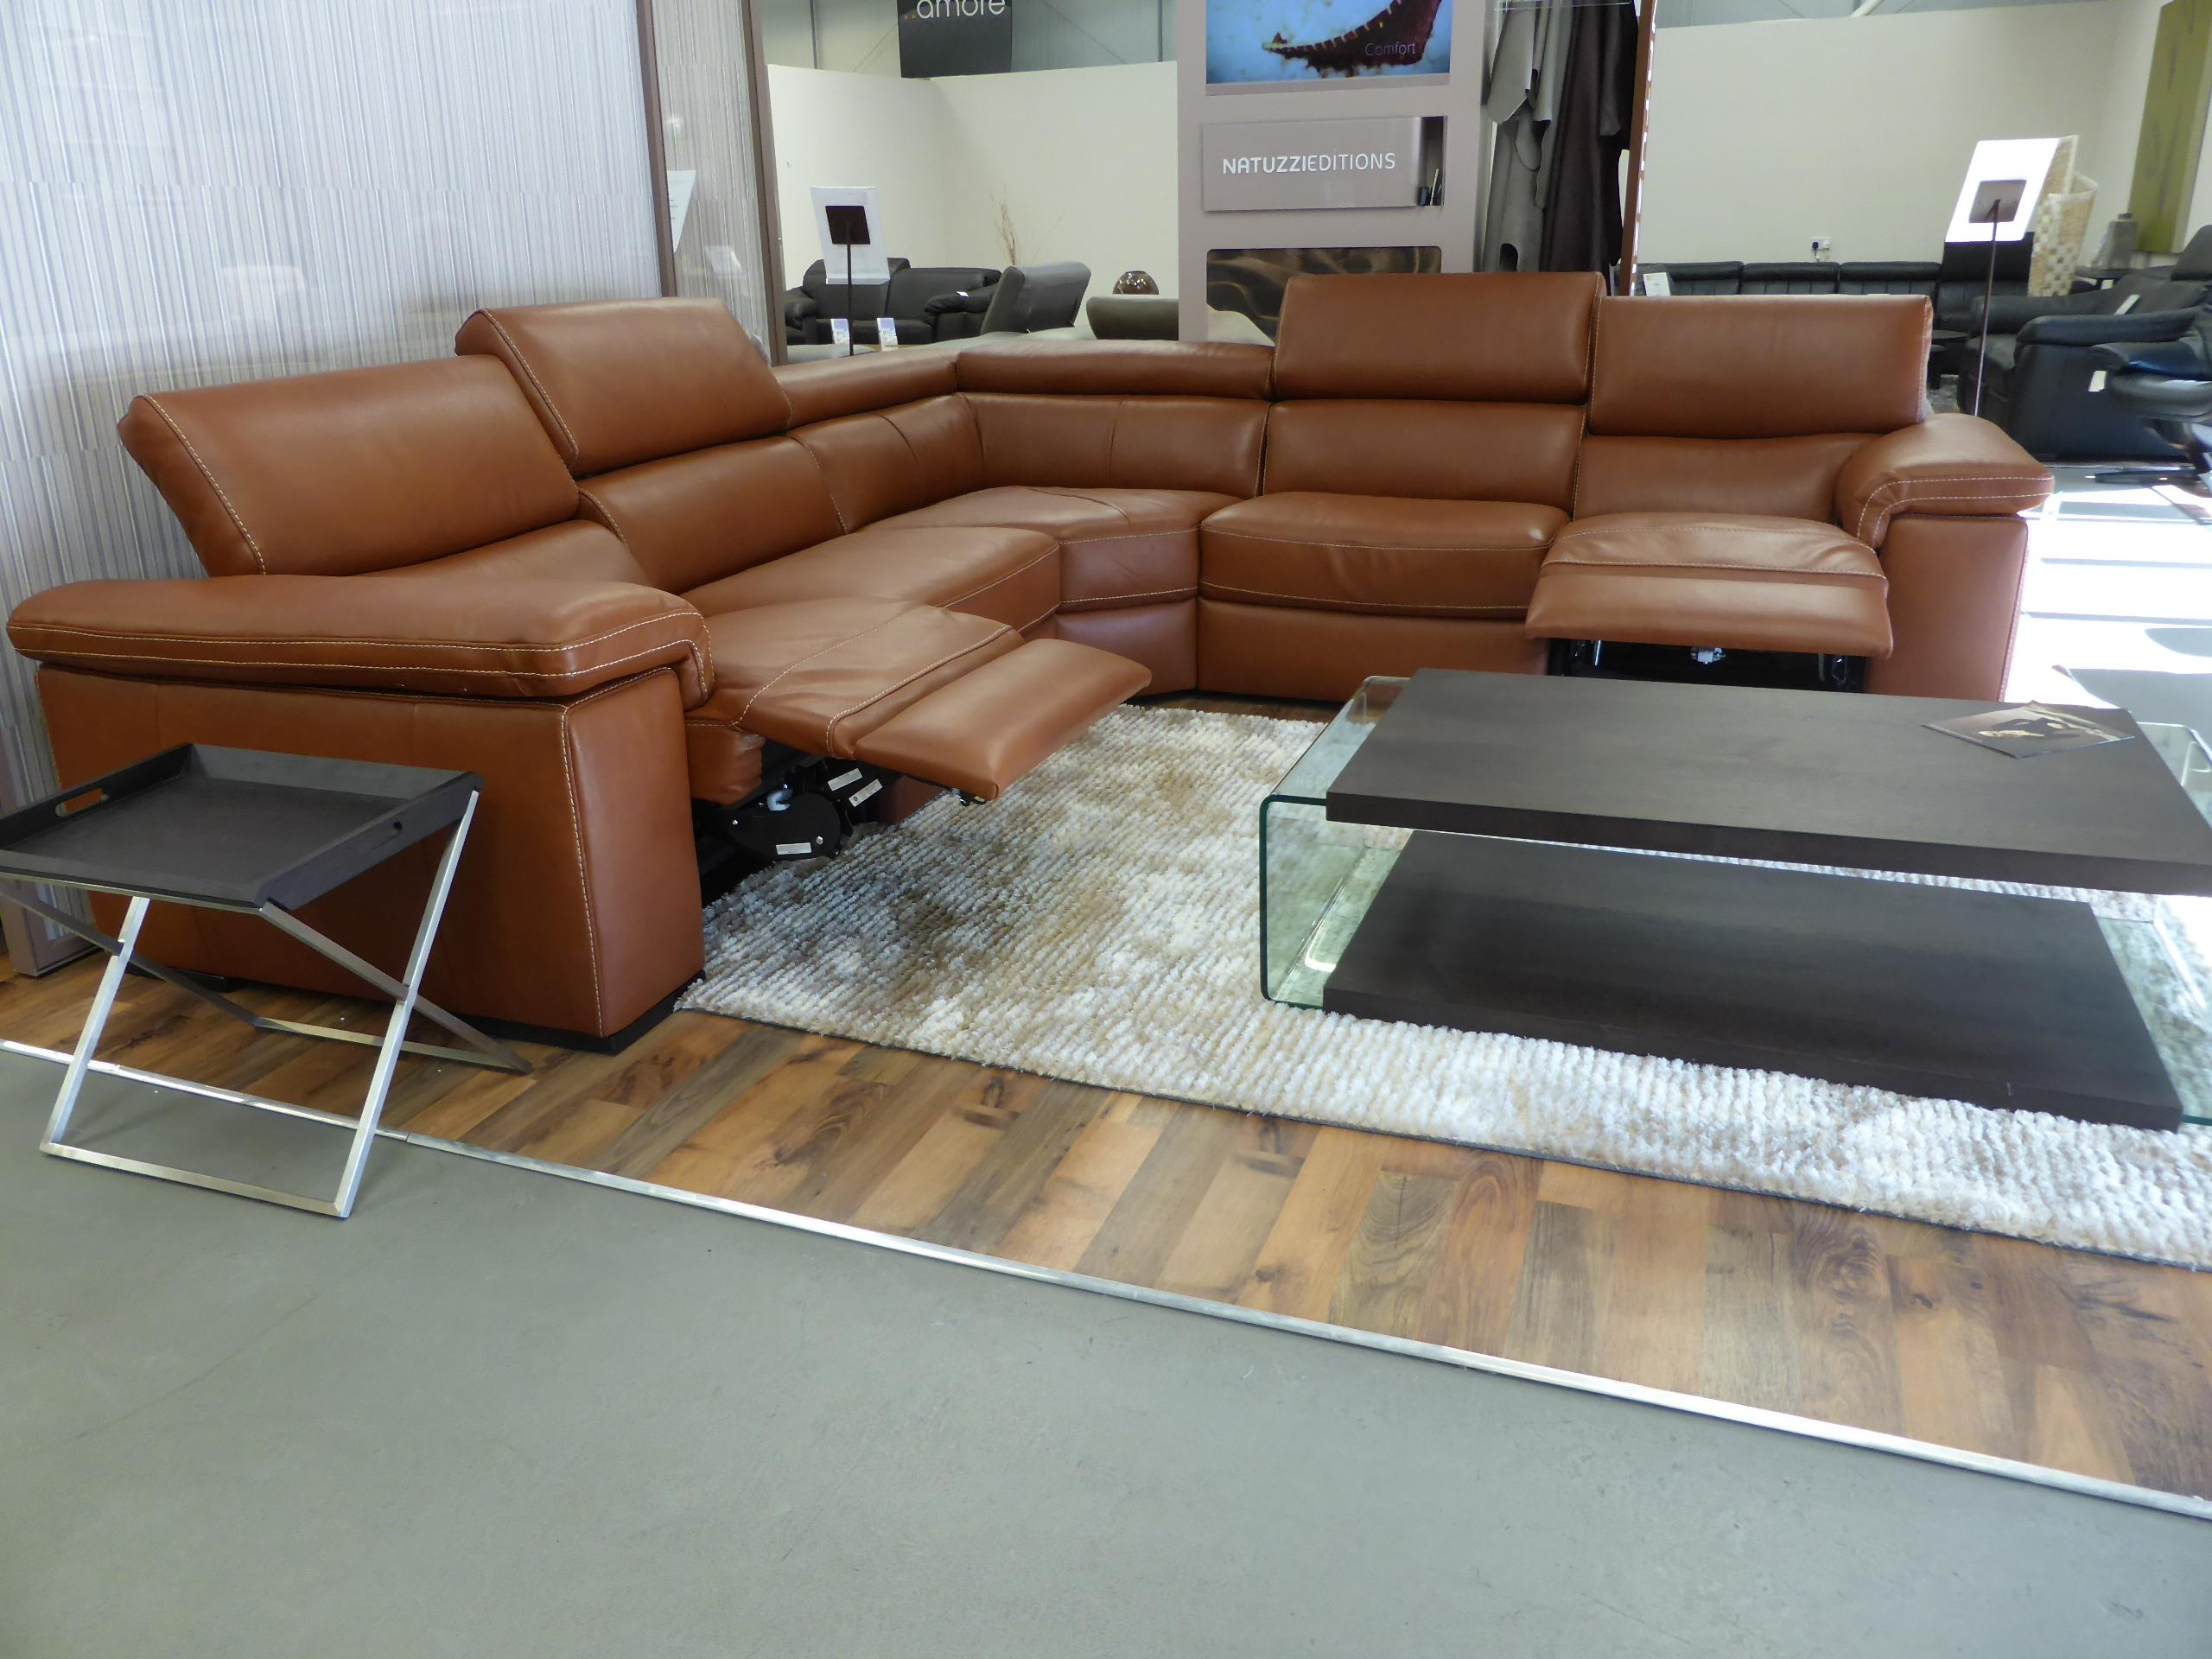 Furniture: Have An Elegant Living Room With Natuzzi Leather Couch Intended For Carmel Leather Sofas (Image 12 of 20)